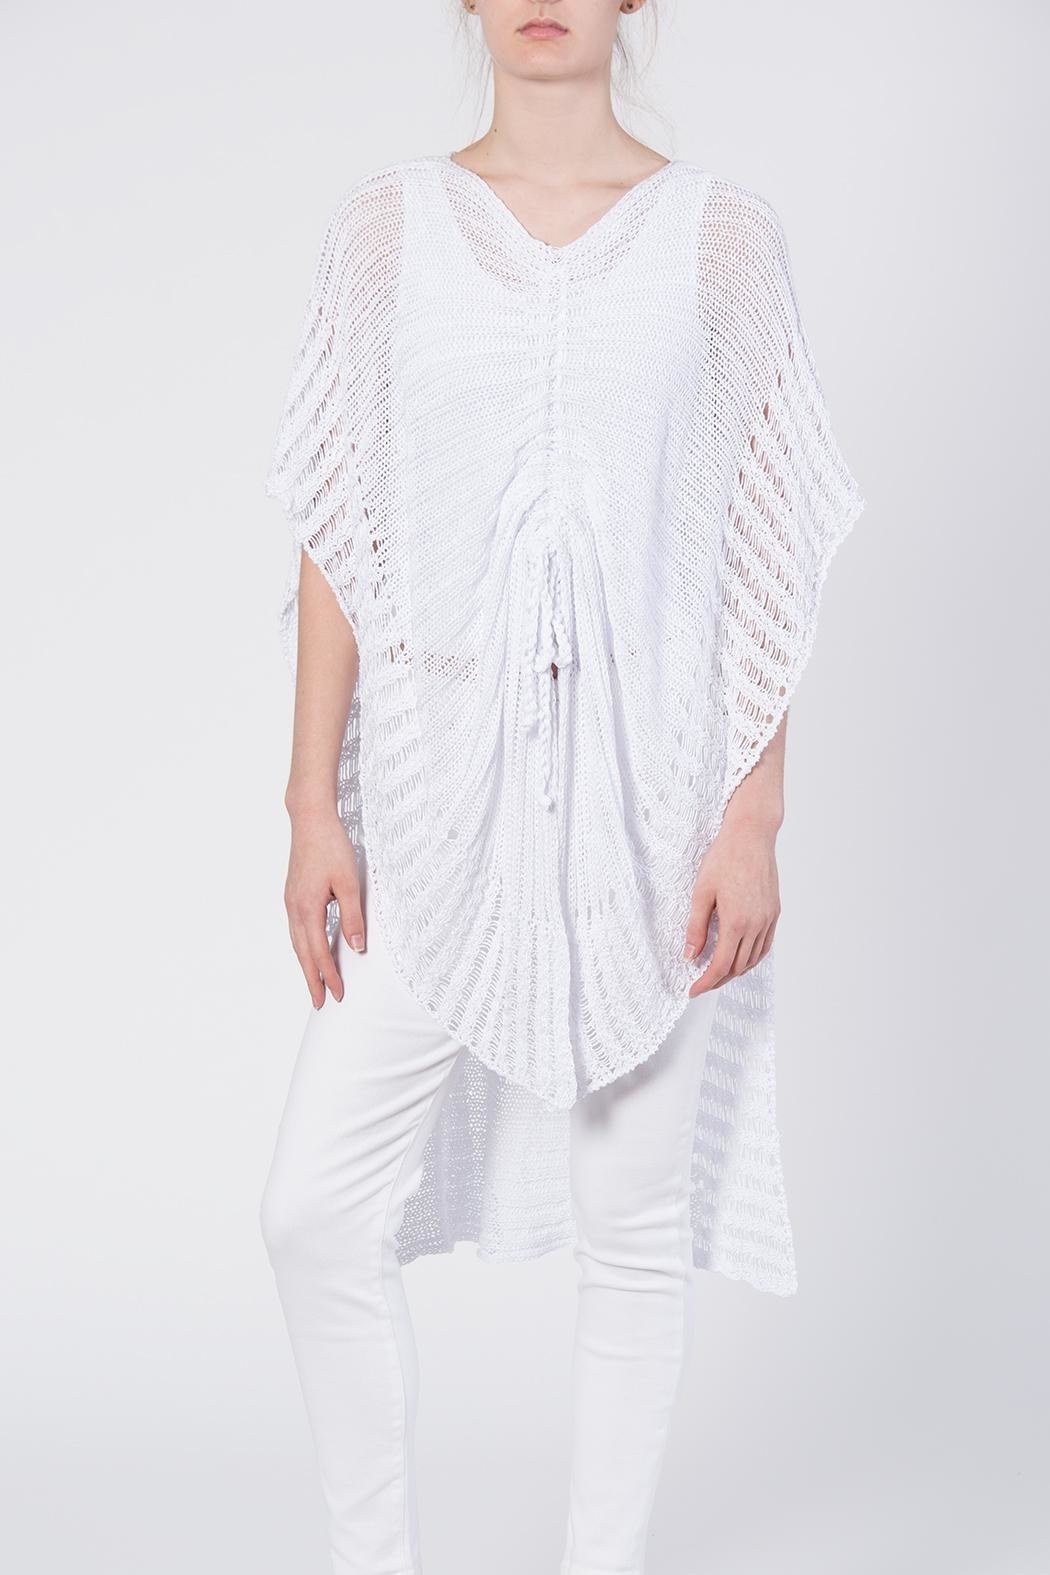 BK Moda White Cape Sweater - Front Cropped Image